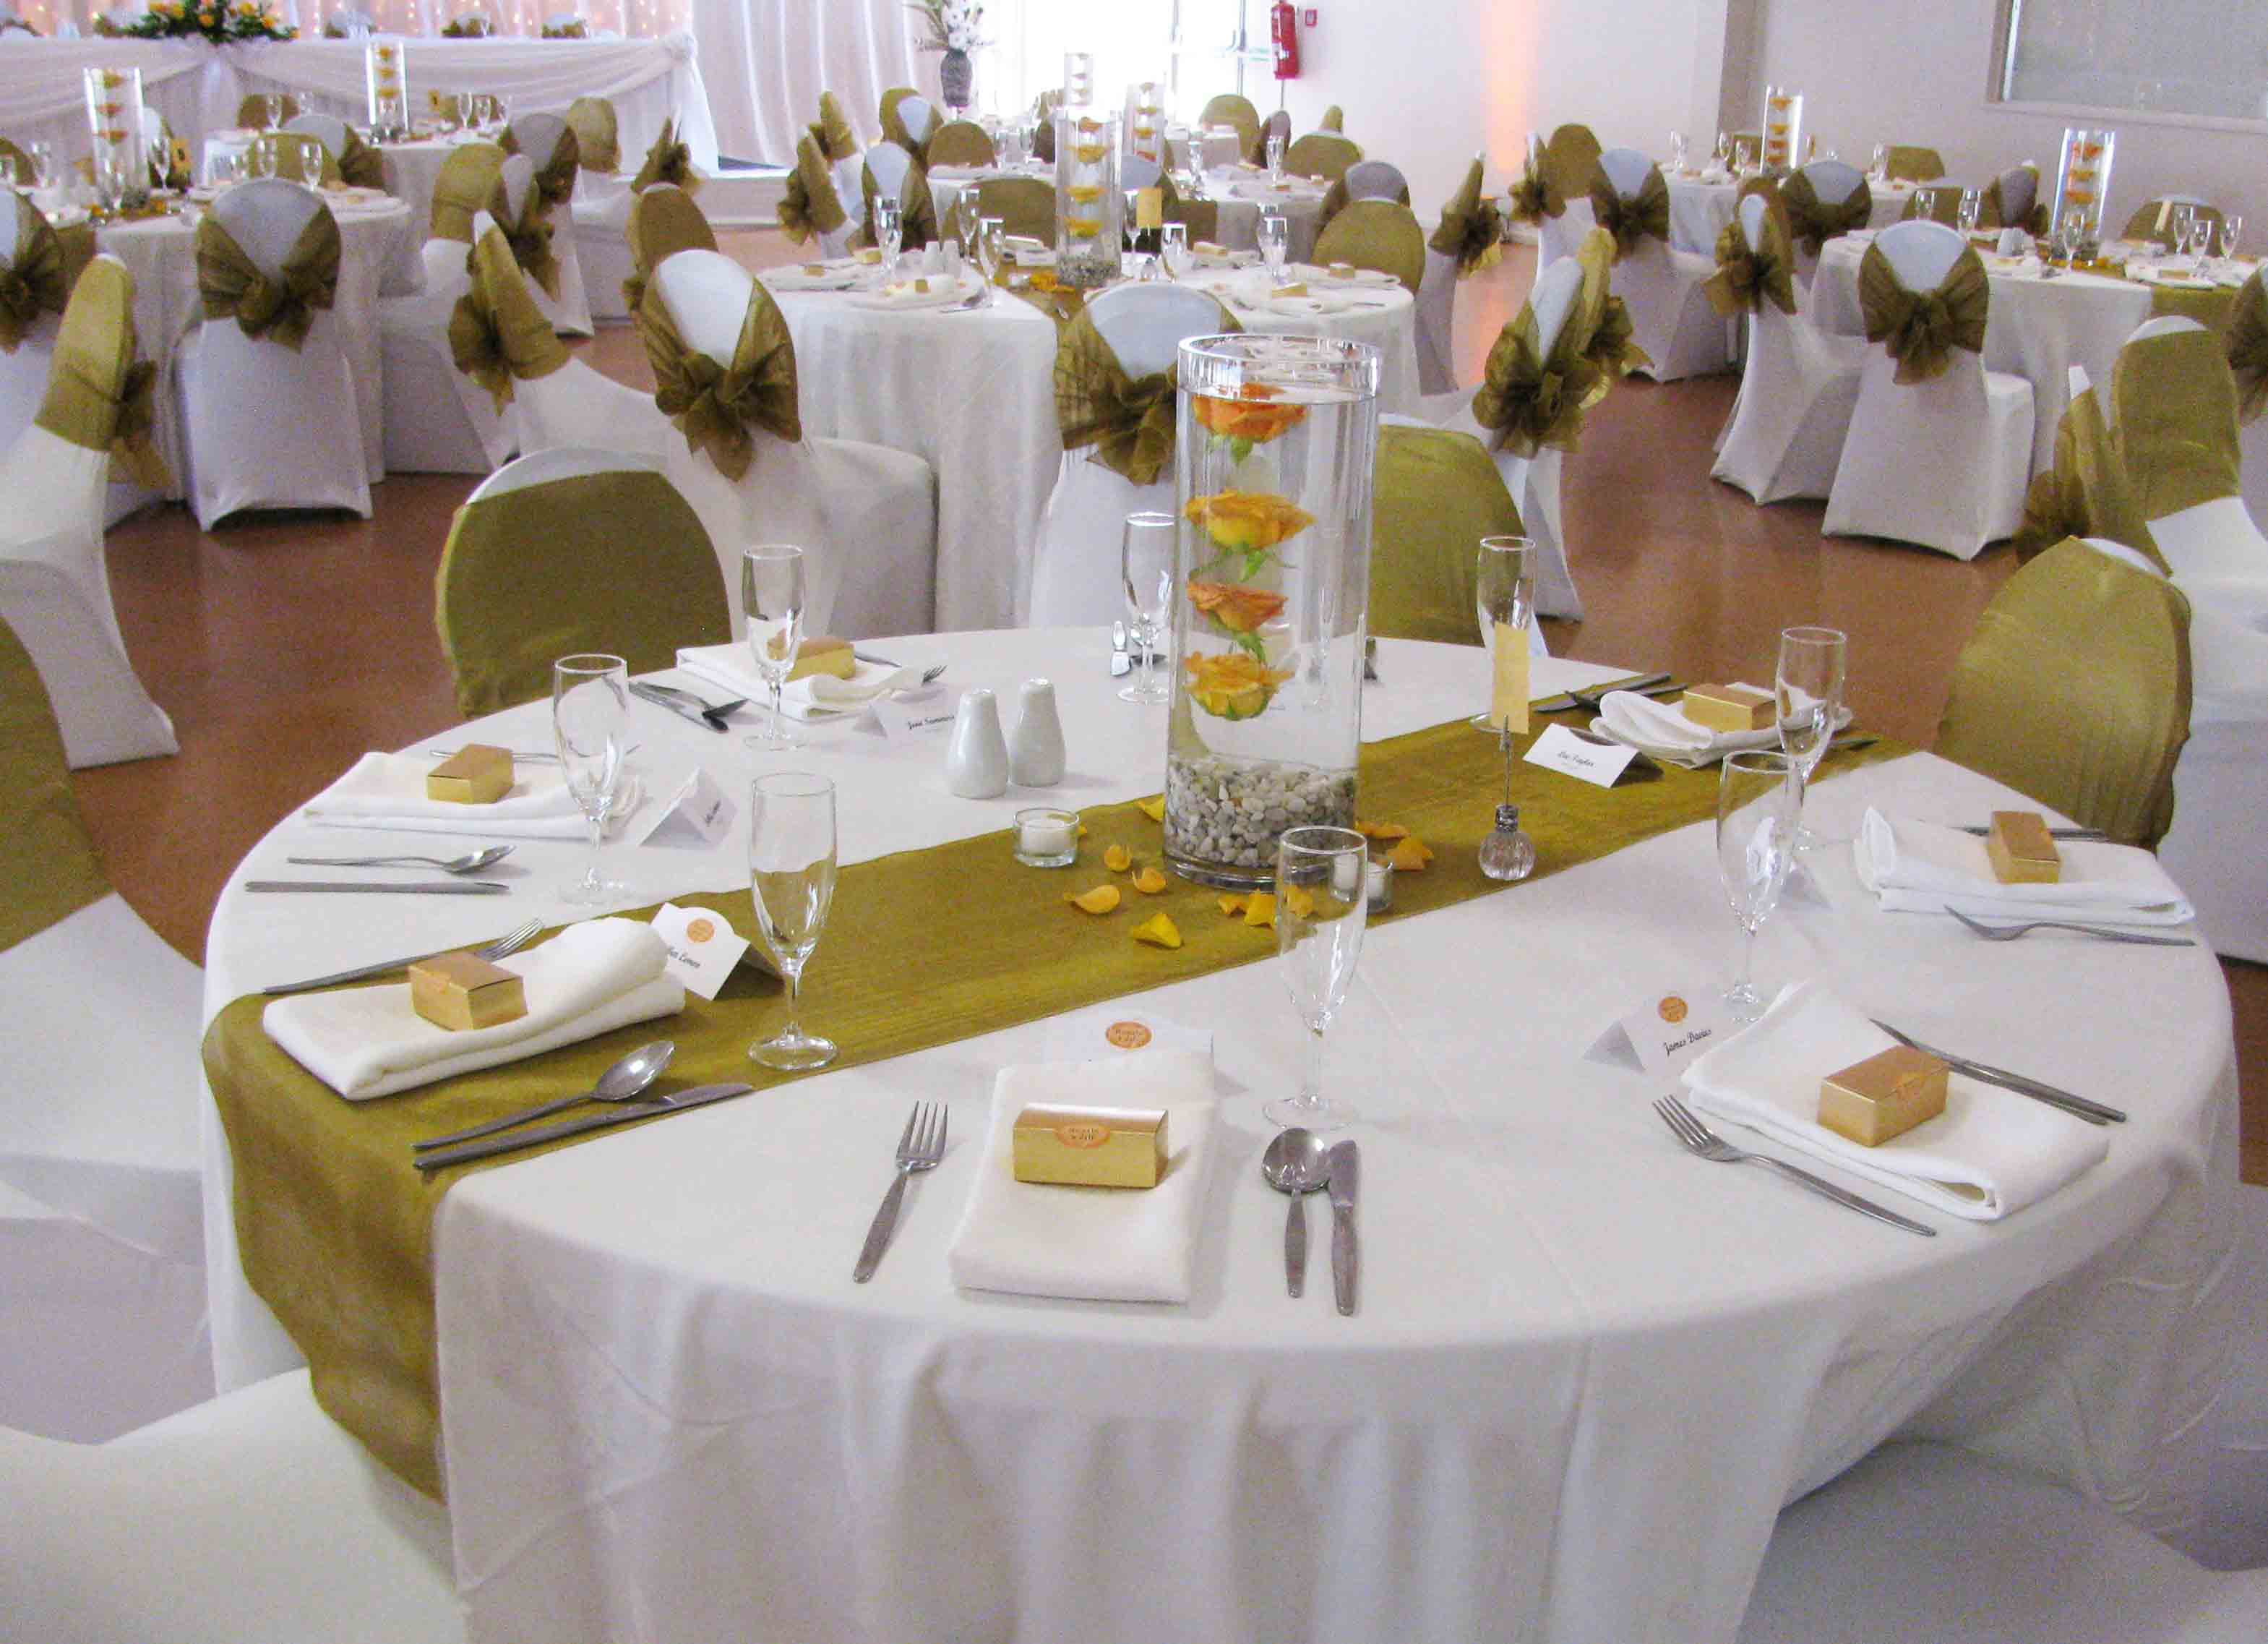 Caterers ubp provides indian catering asian wedding caterer - Decorations de mariage ...